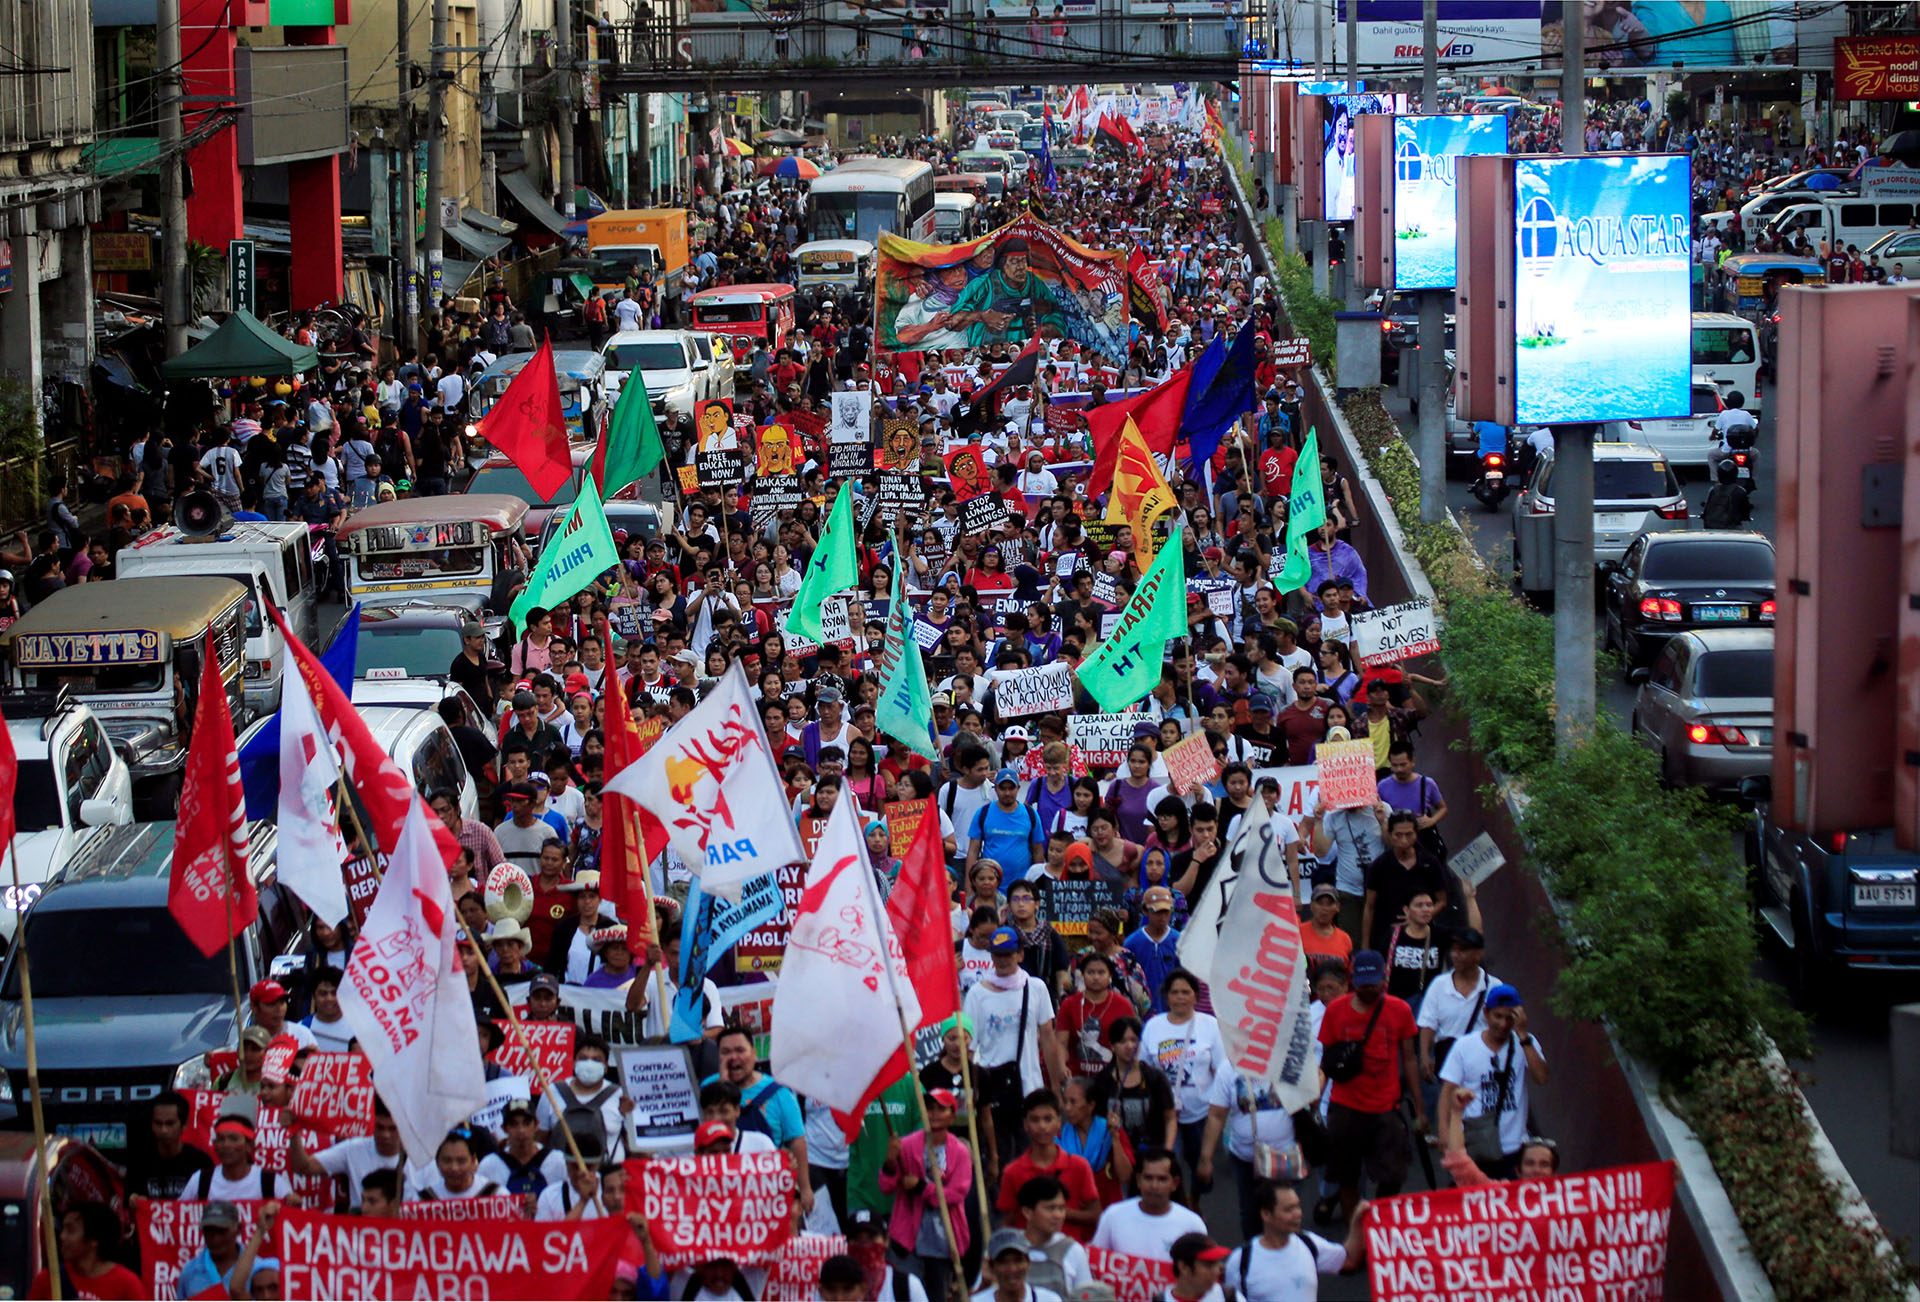 Women's rights activists display placards and streamers while marching during a celebration of the International Women's Day in Quiapo city, Metro Manila